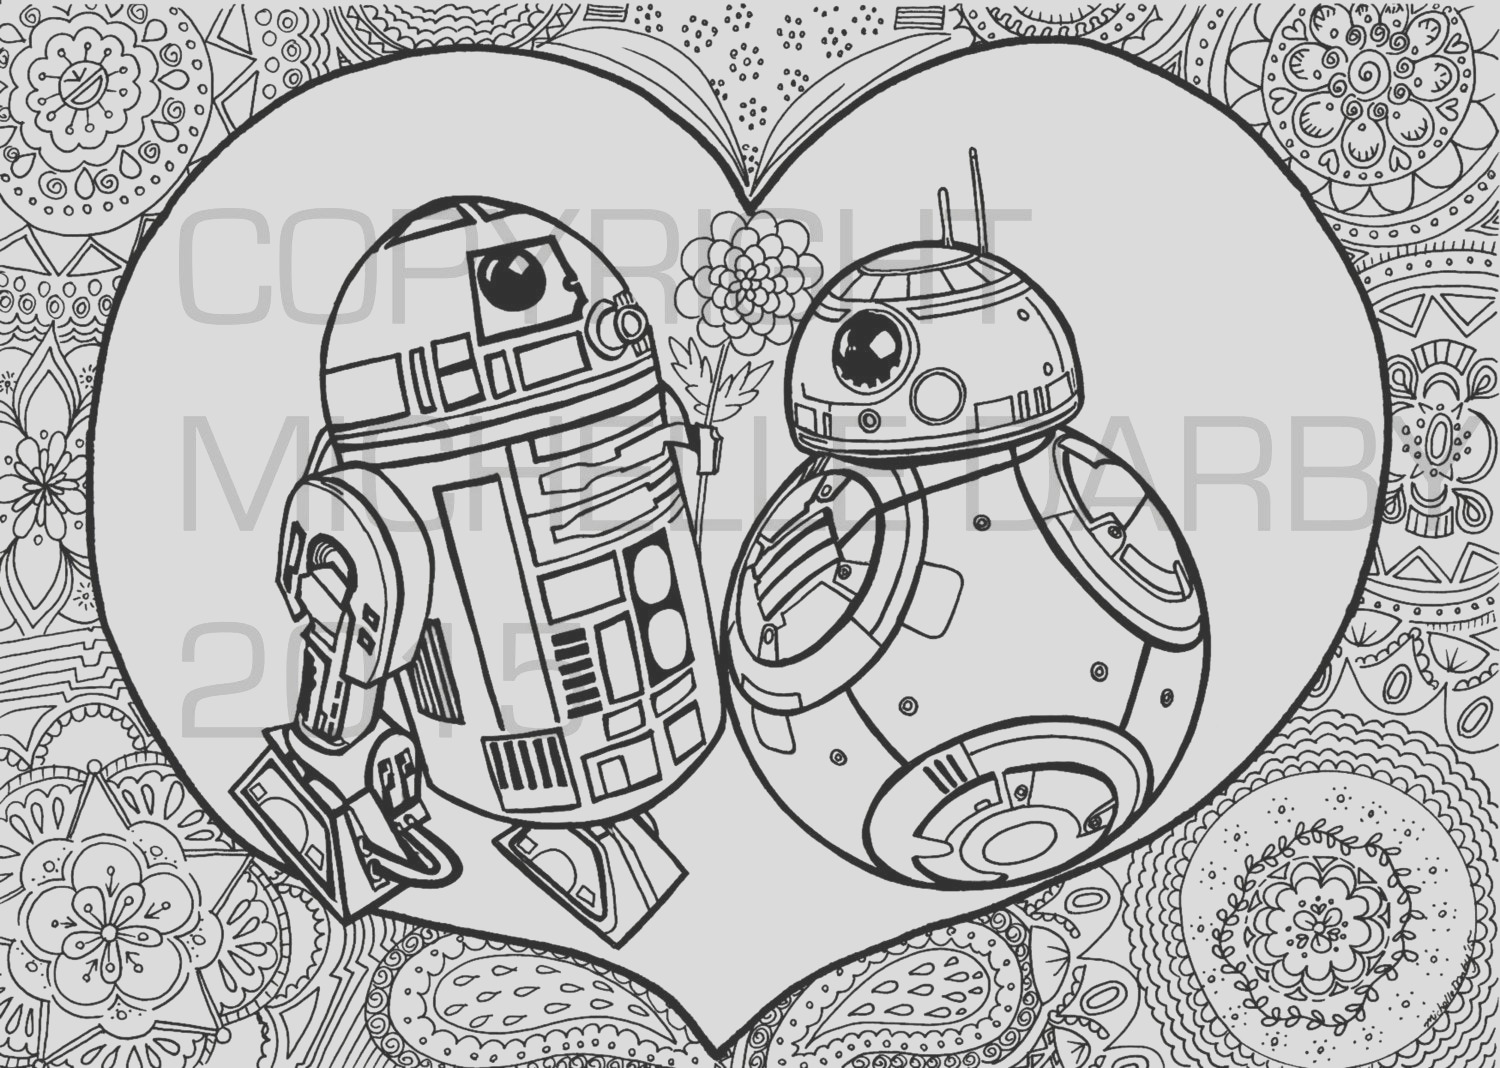 r2d2 3 bb 8 colouring page